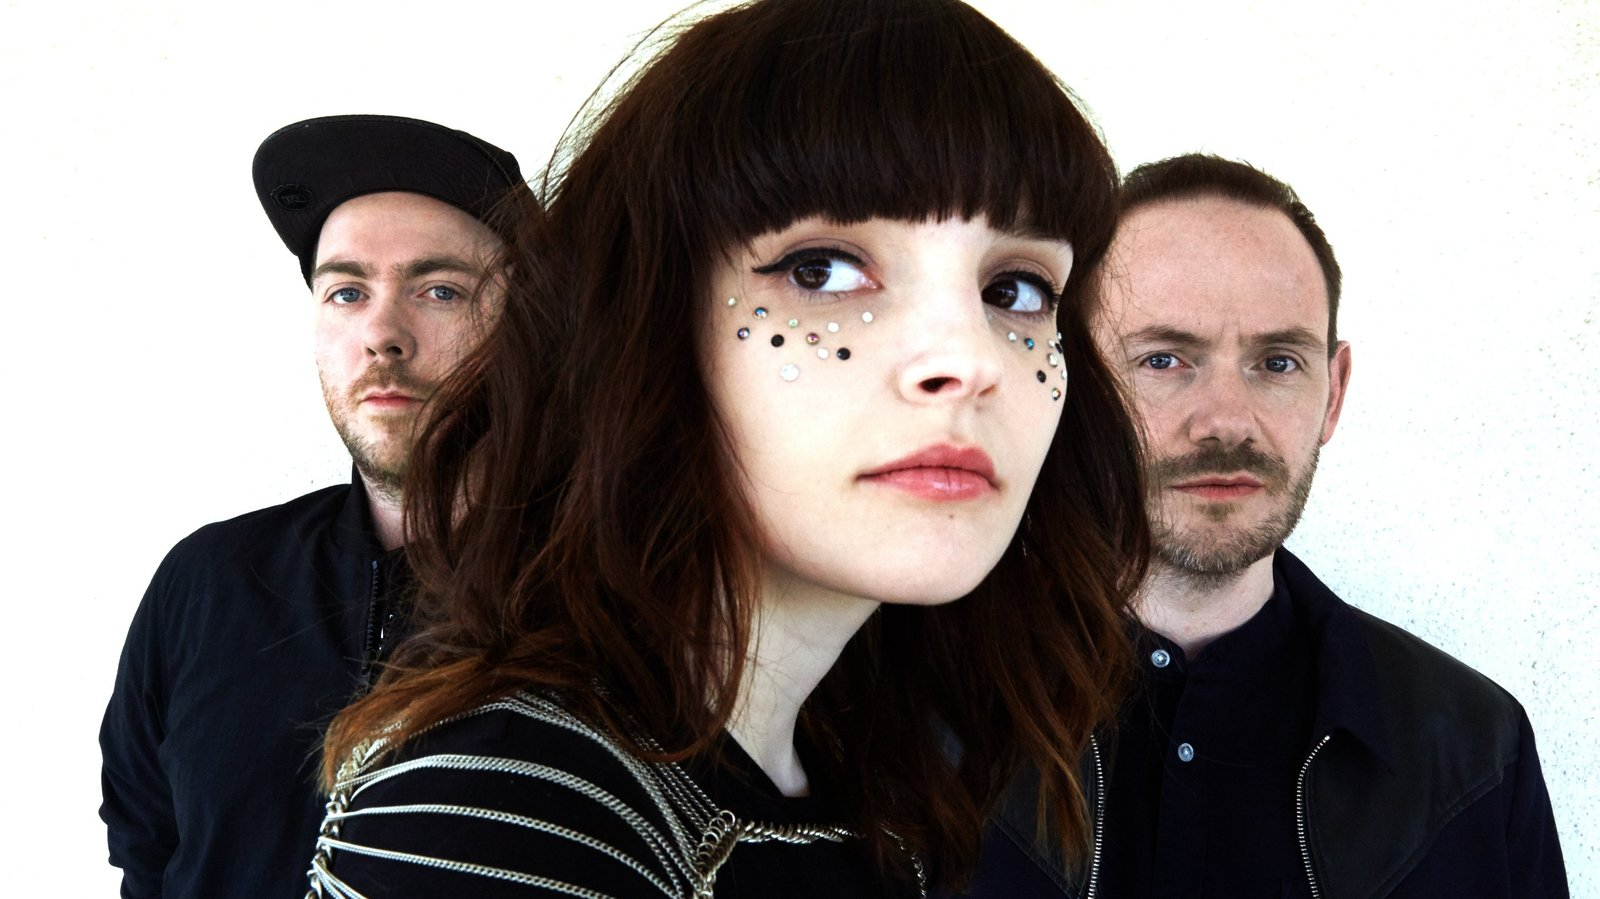 Hear CHVRCHES Turn A 14-Year-Old's Corny Love Poem Into A